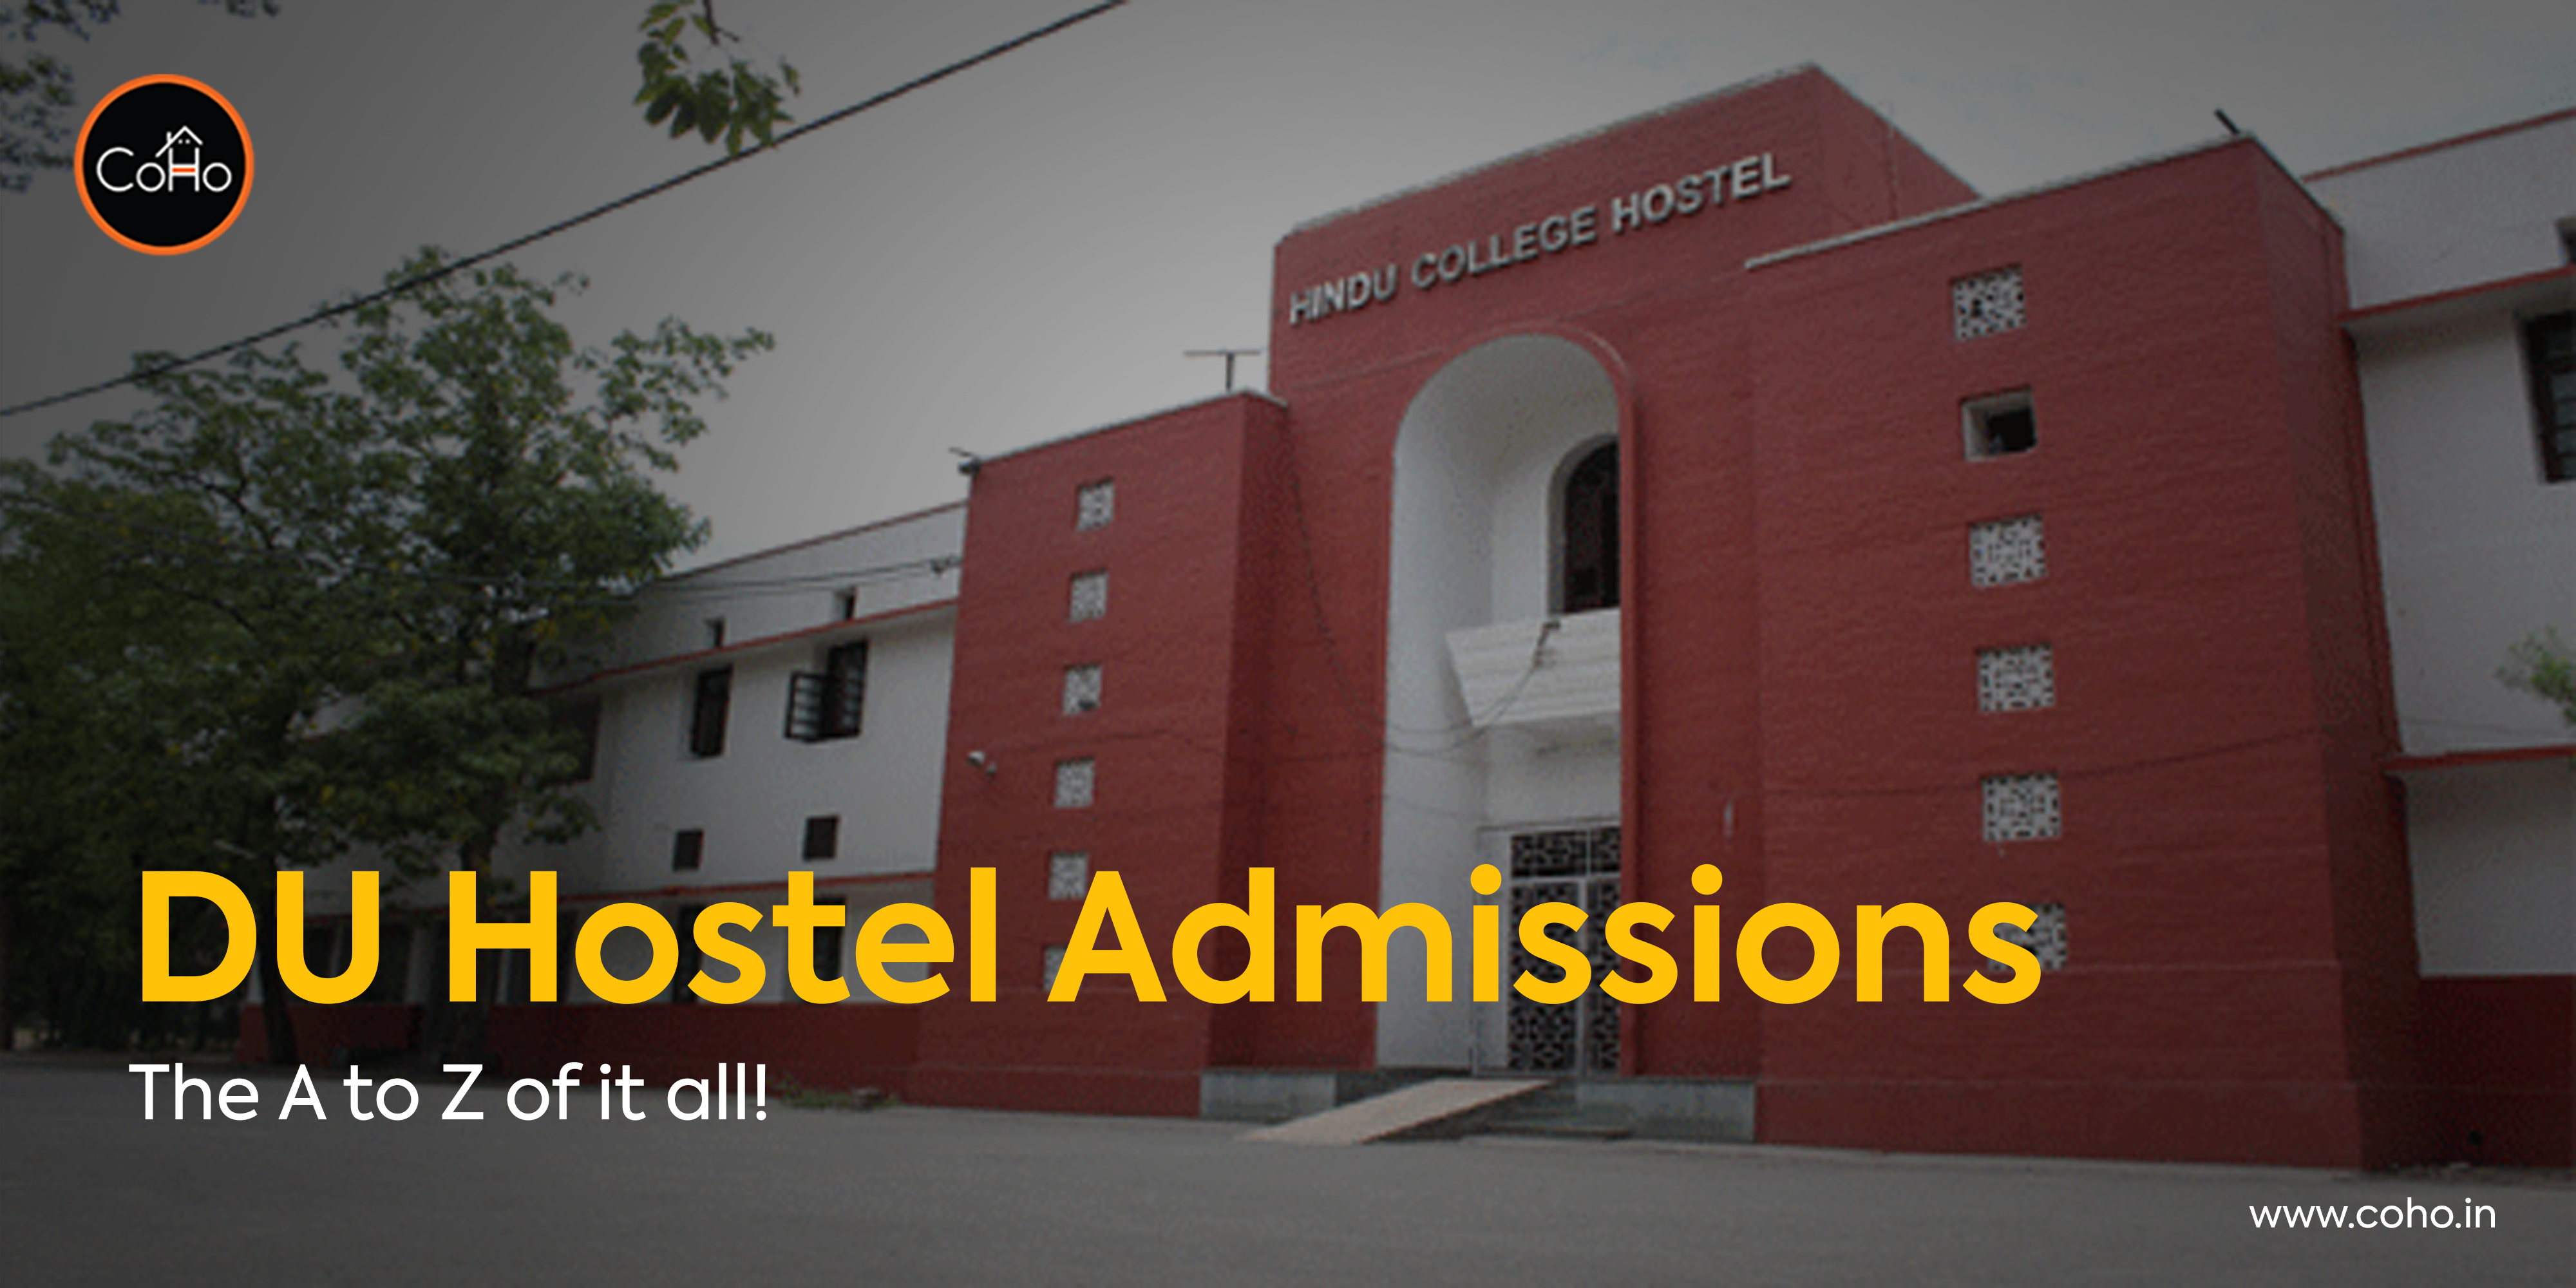 DU Hostel Admissions - The A to Z of it all